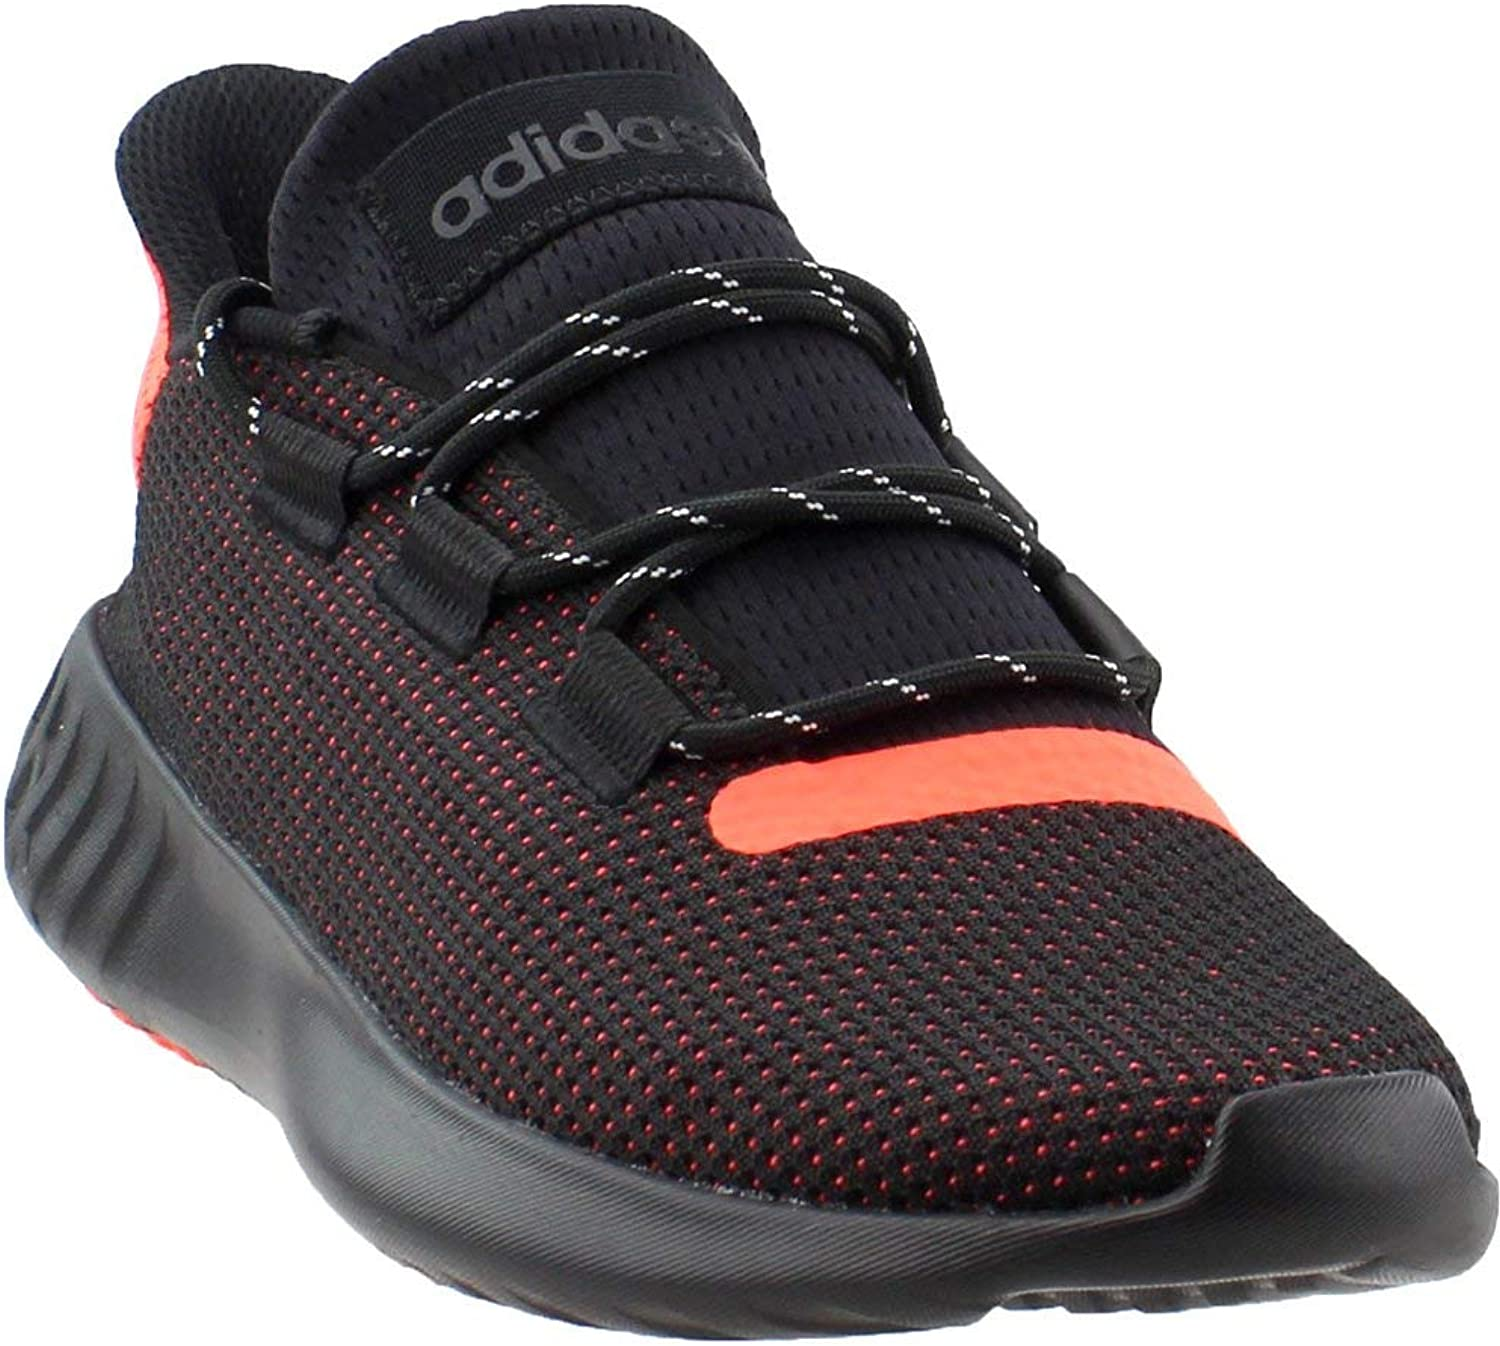 Adidas Mens Tubular Dusk Athletic & Sneakers Black